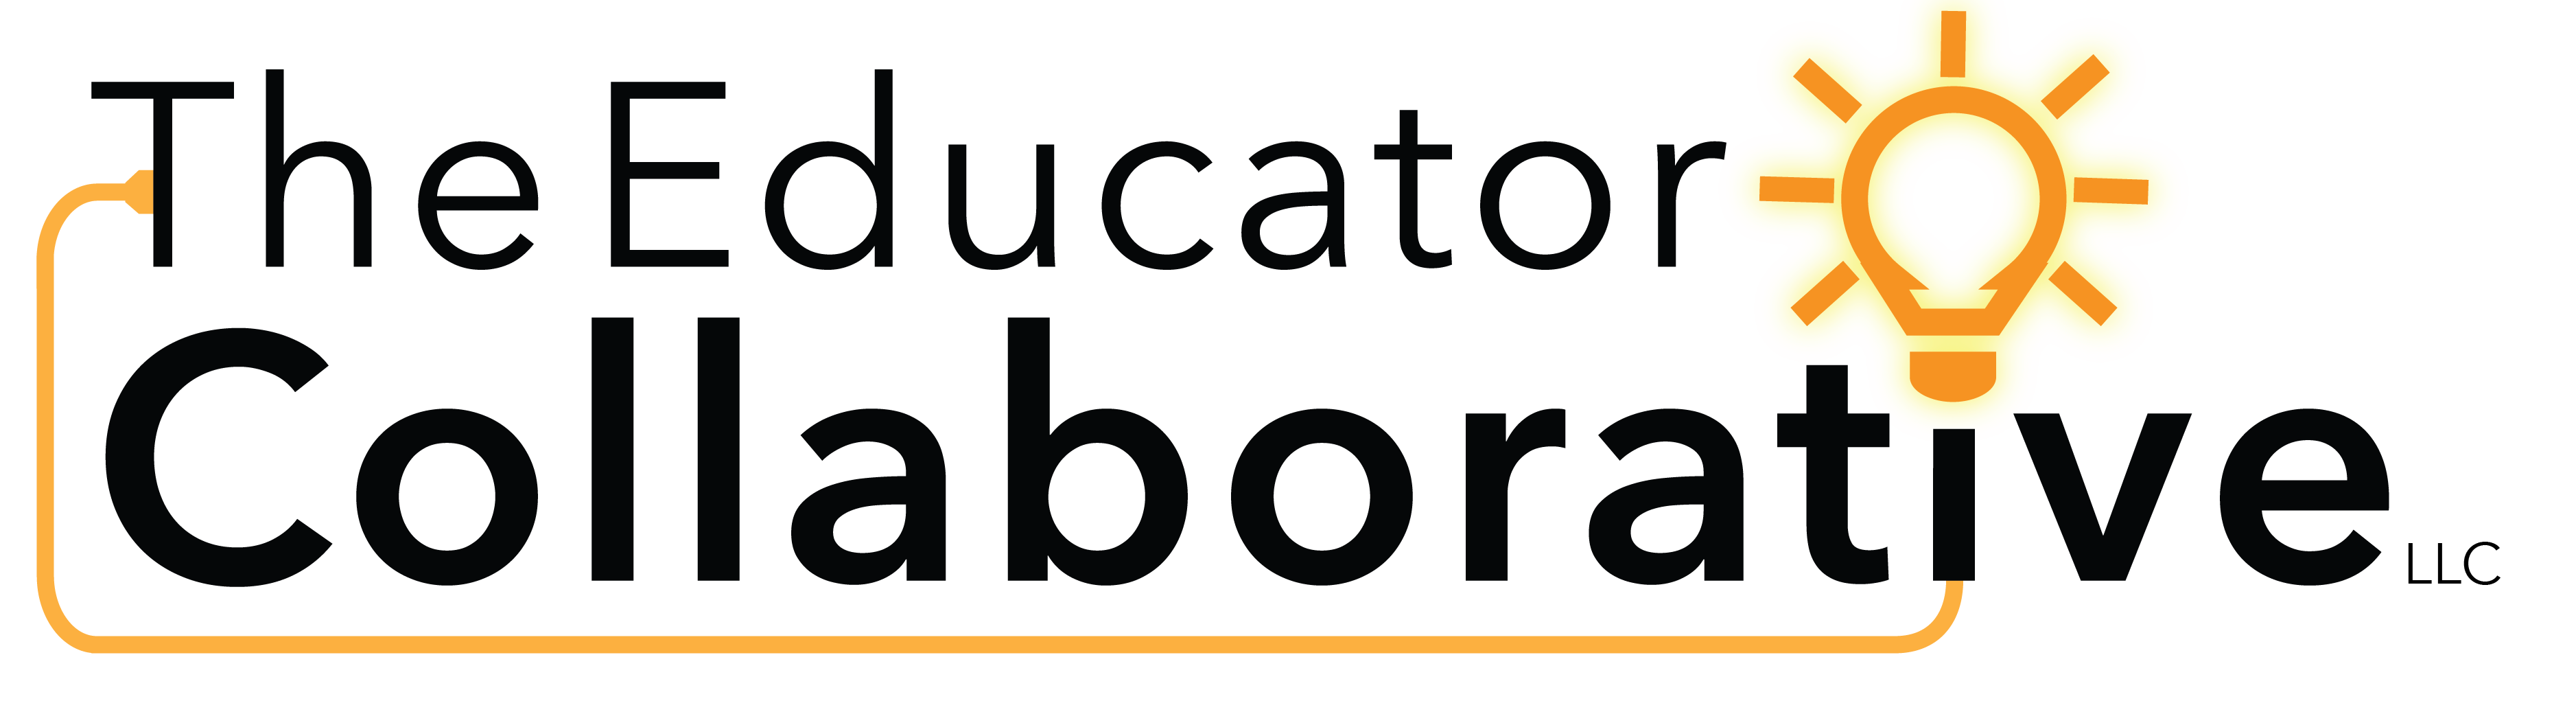 The Educator Collaborative literacy professional development organization specializing in writing workshop, reading workshop, balanced literacy, culturally relevant pedagogy, technology integration and standards alignment